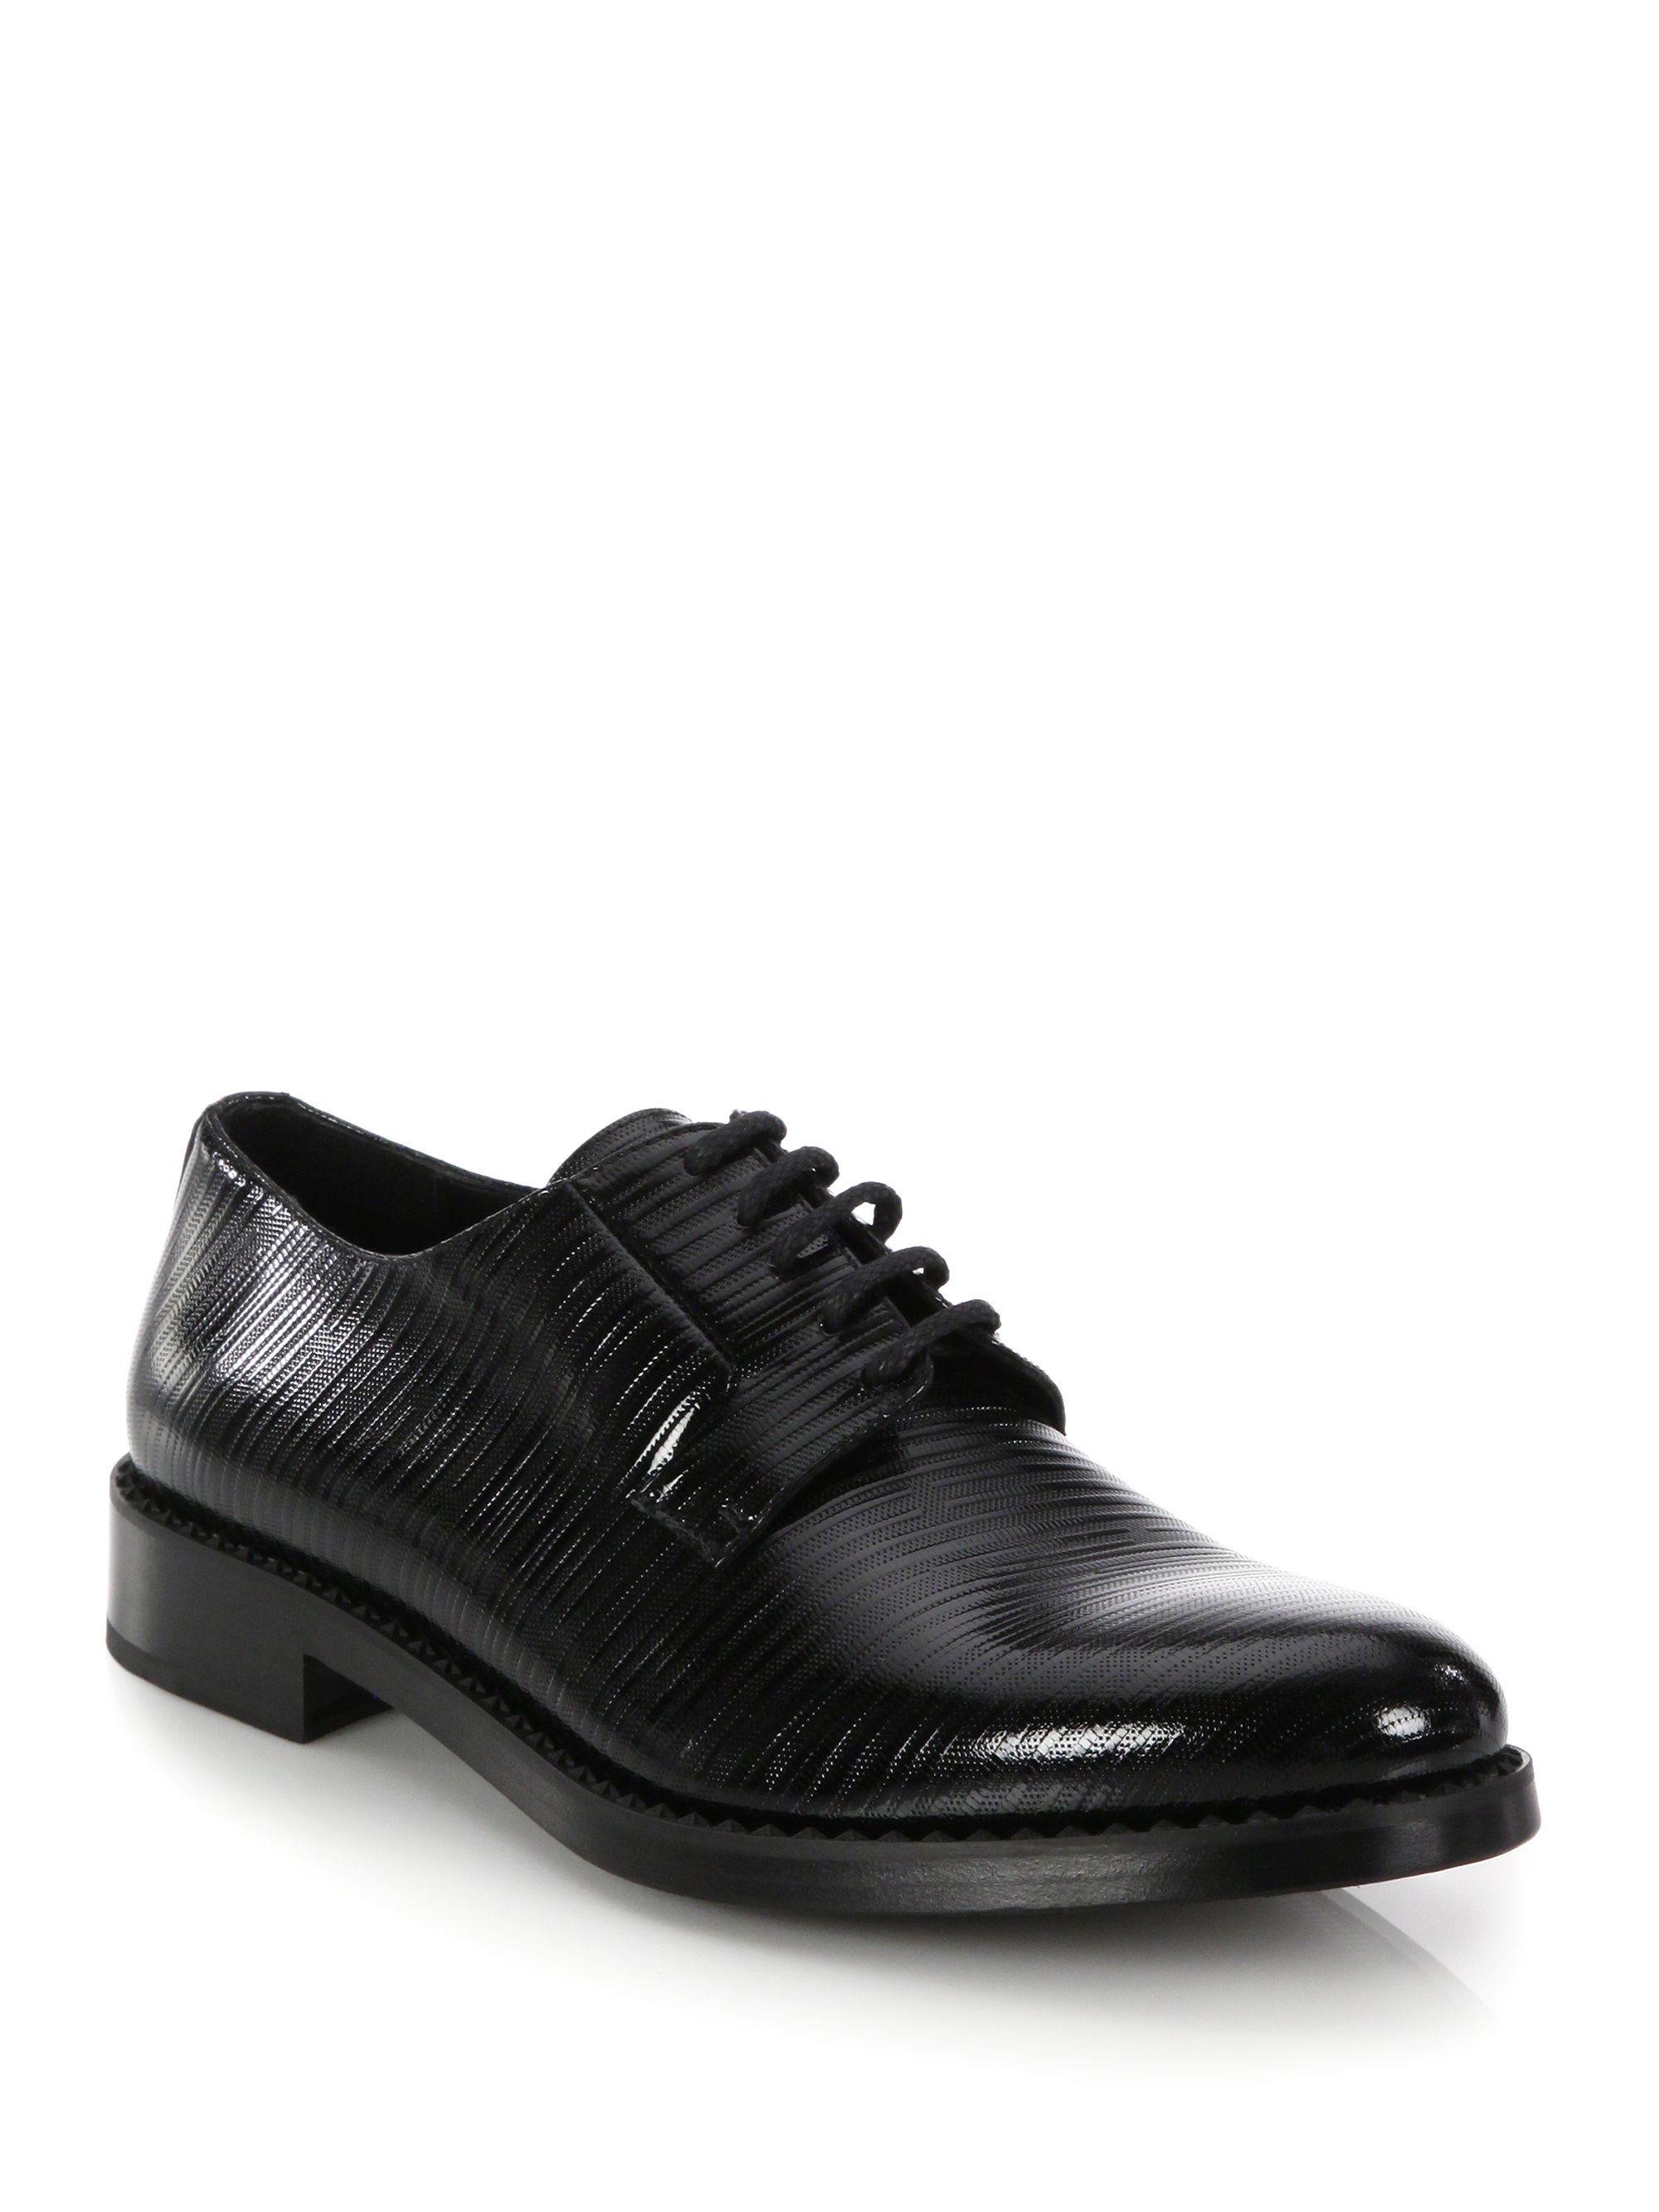 jimmy choo etched derby shoes in black for lyst